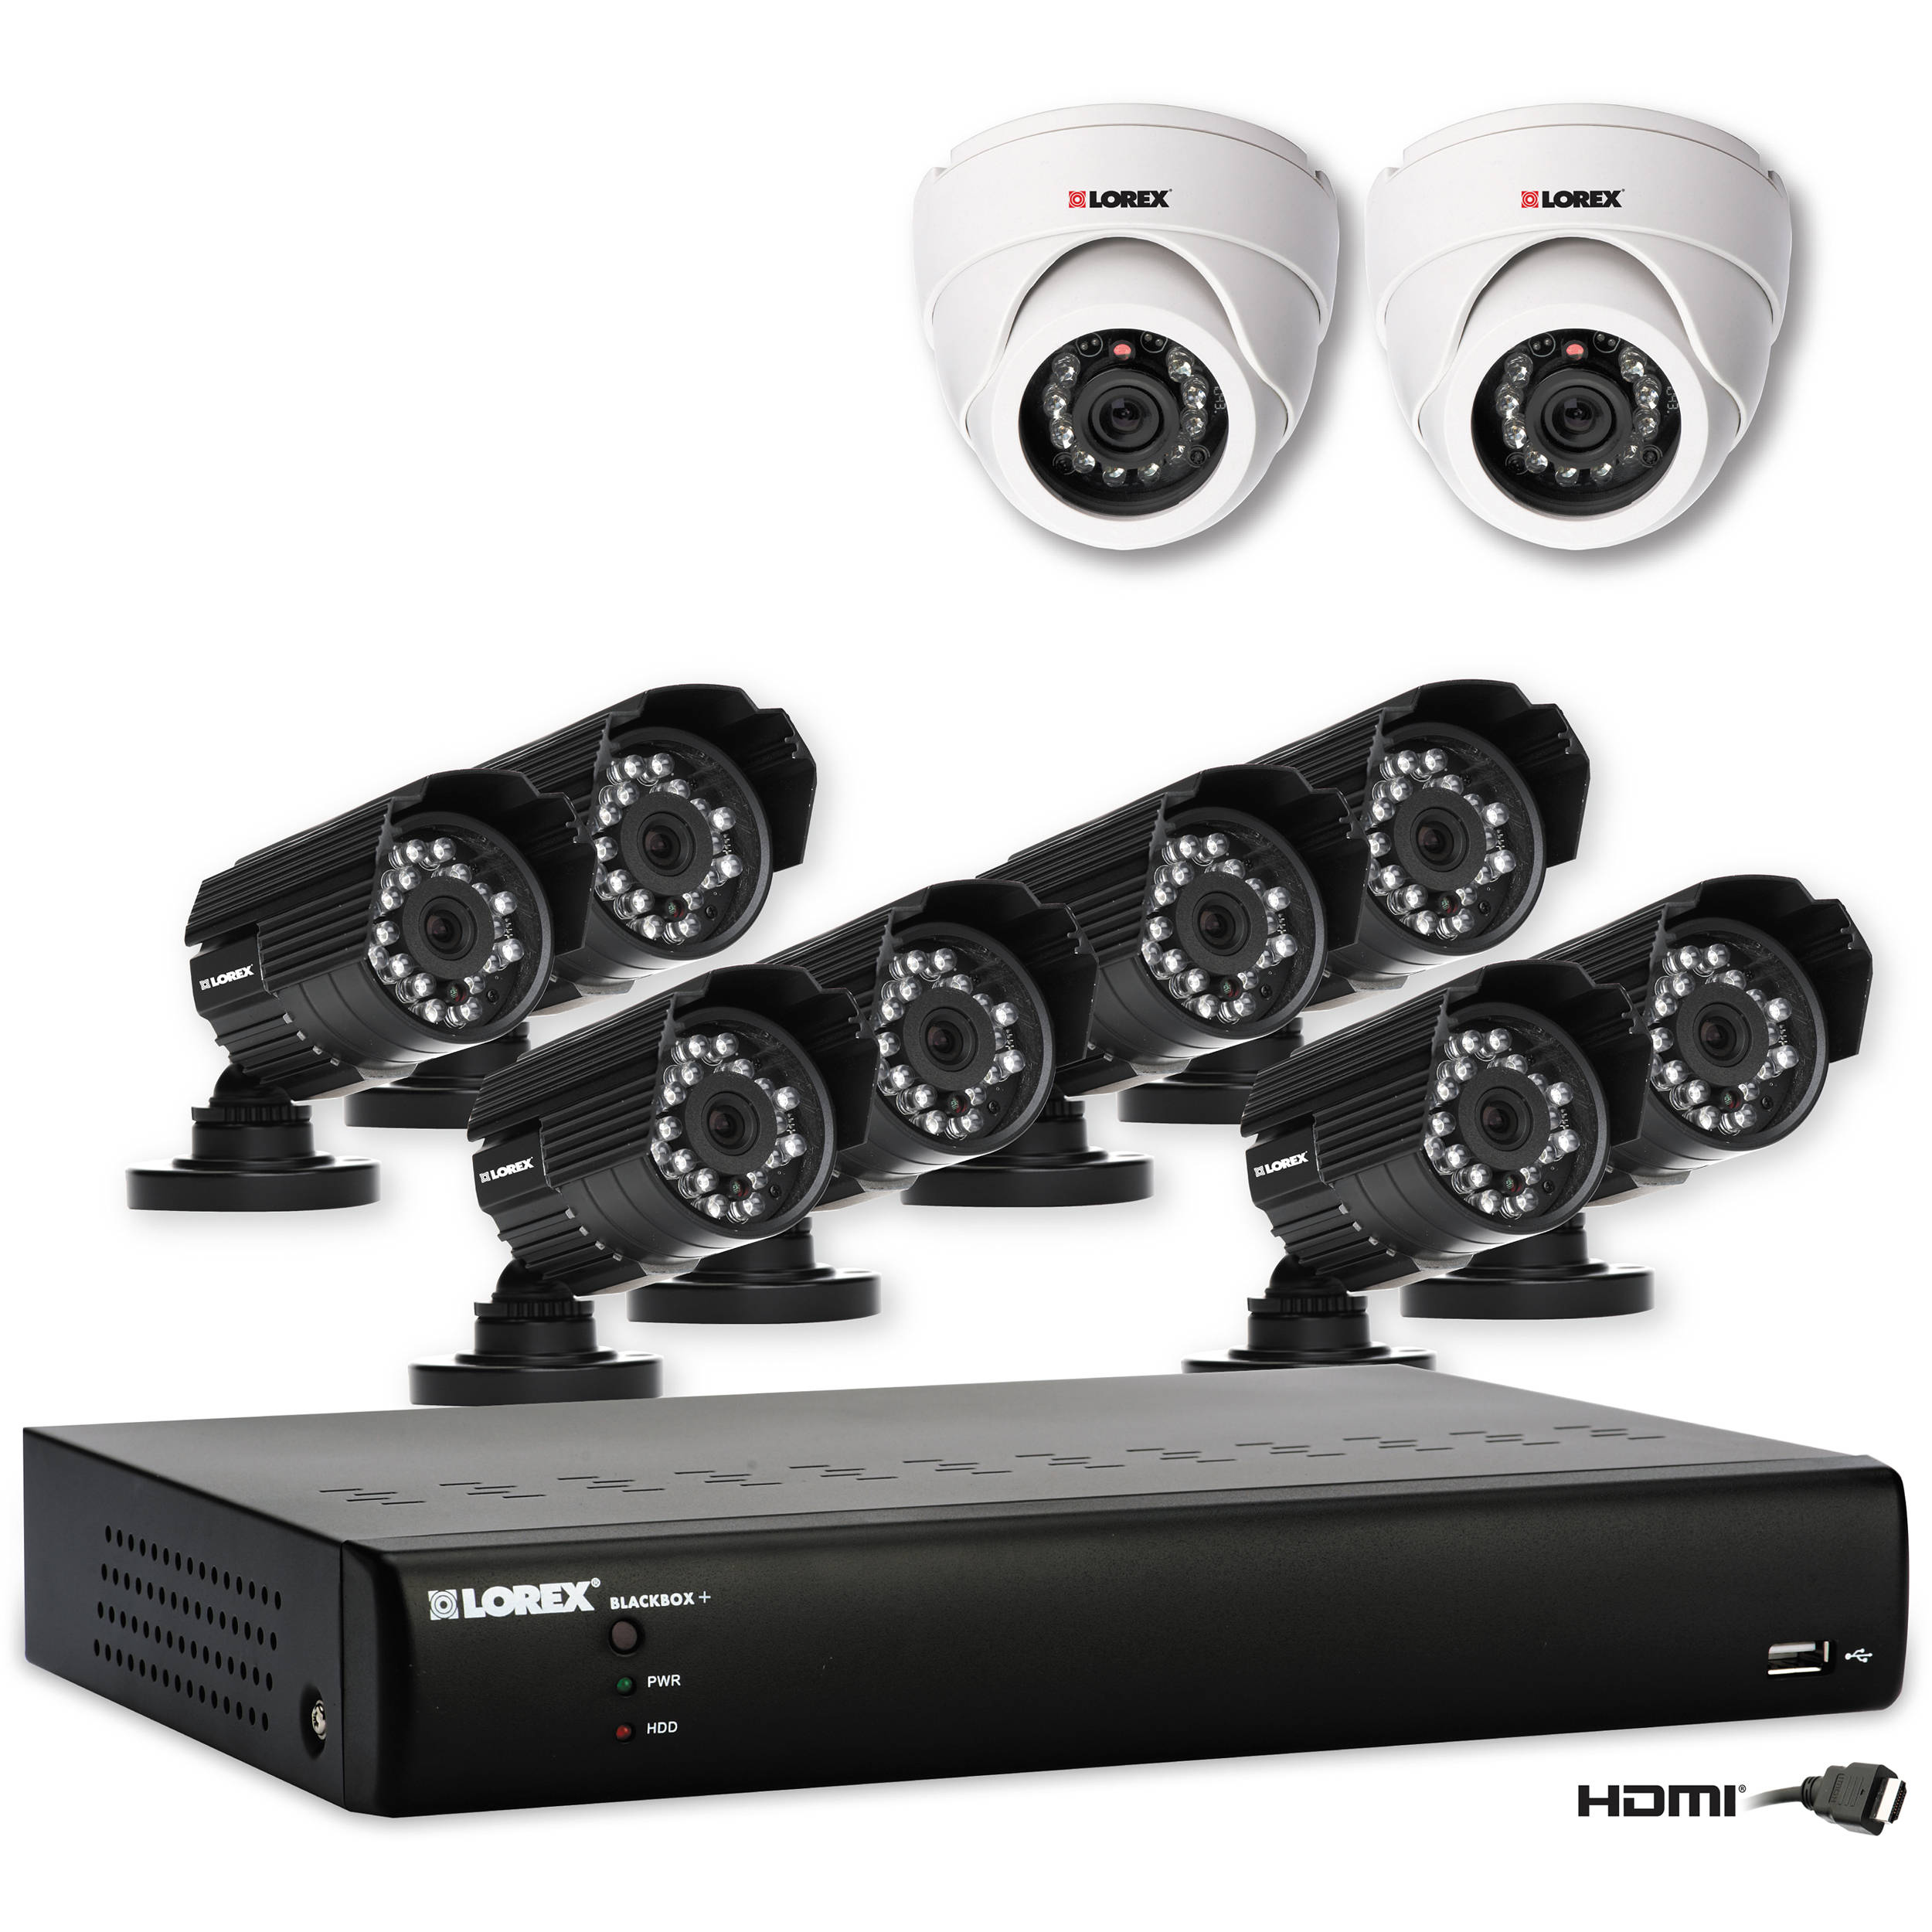 Lorex Group Buy! Buy Together and Save Together. Save 30% when when you buy products with your friends, 4K IP Security Camera System with 16 Channel NVR and 16 Outdoor 2K 4MP IP Cameras, Color Night Vision LNW. Add To Cart. $1, Free & .